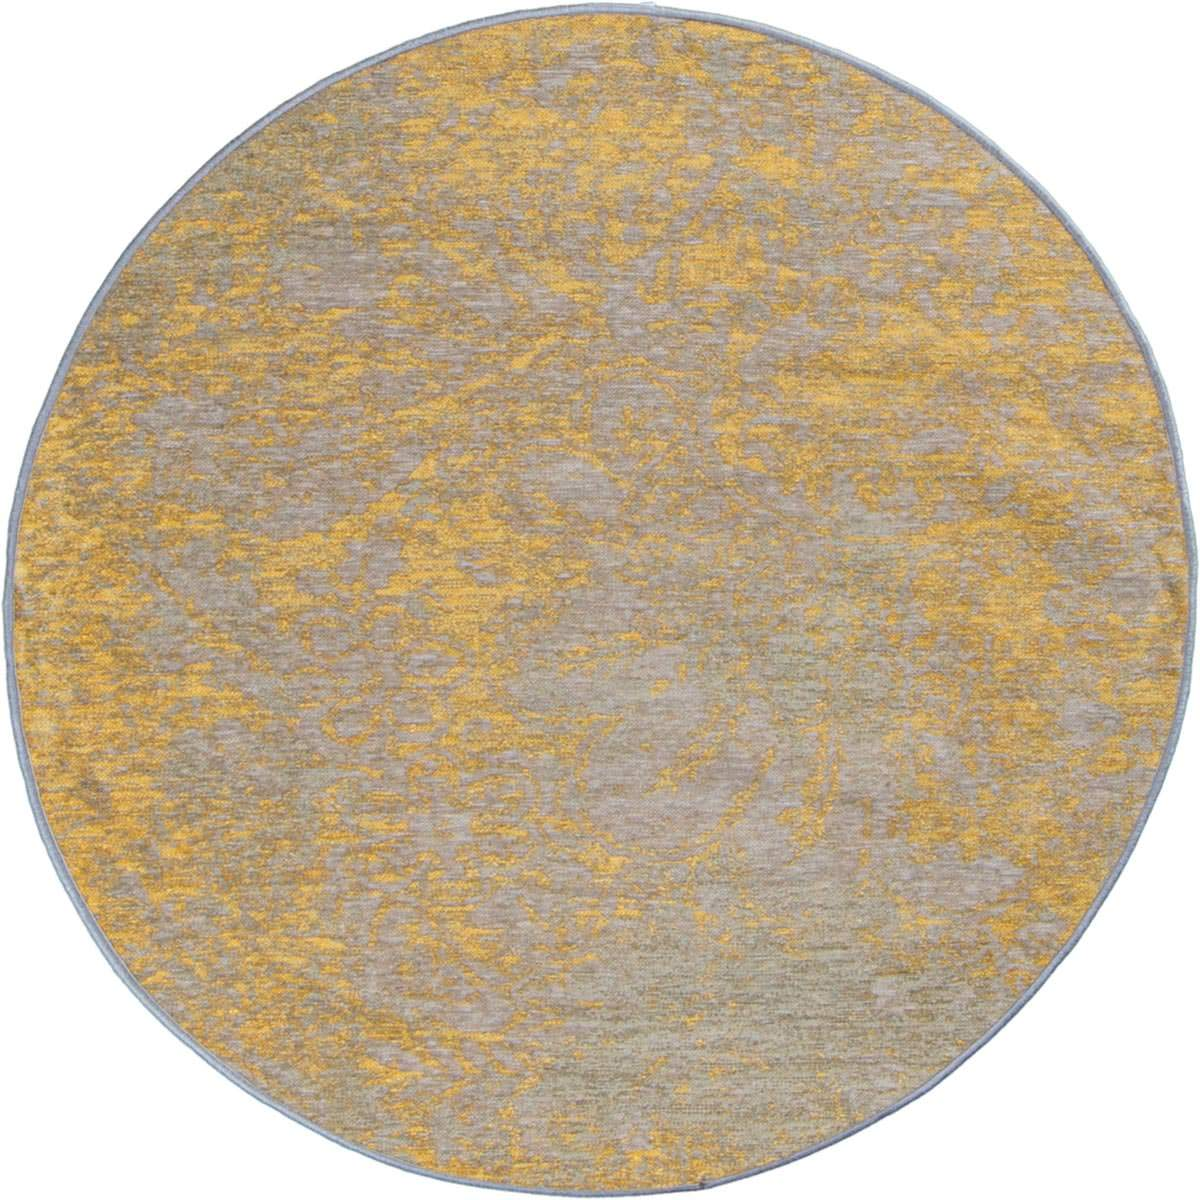 Marseille Rug 29 Yellow/Grey Round 1